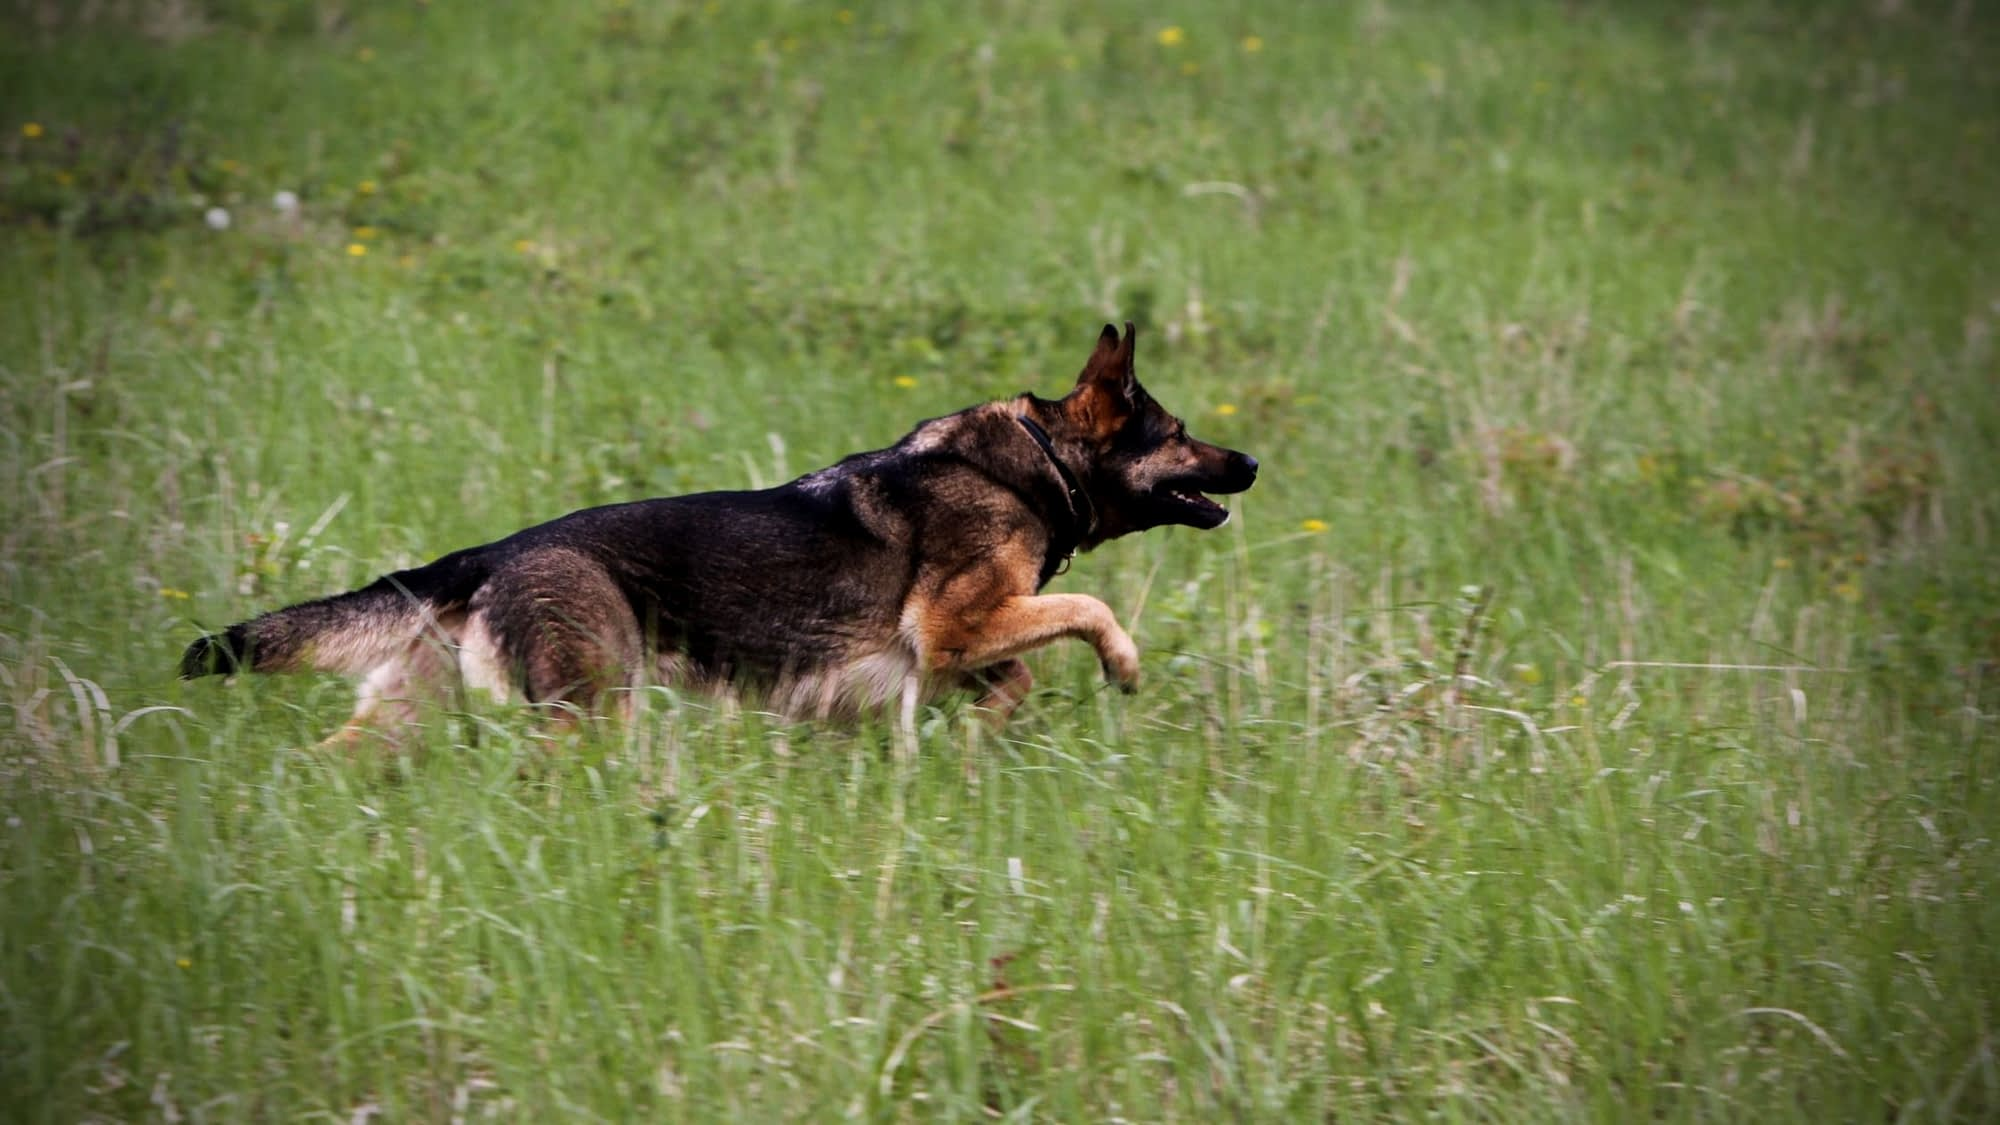 Are German Shepherds Good Hunting Dogs?